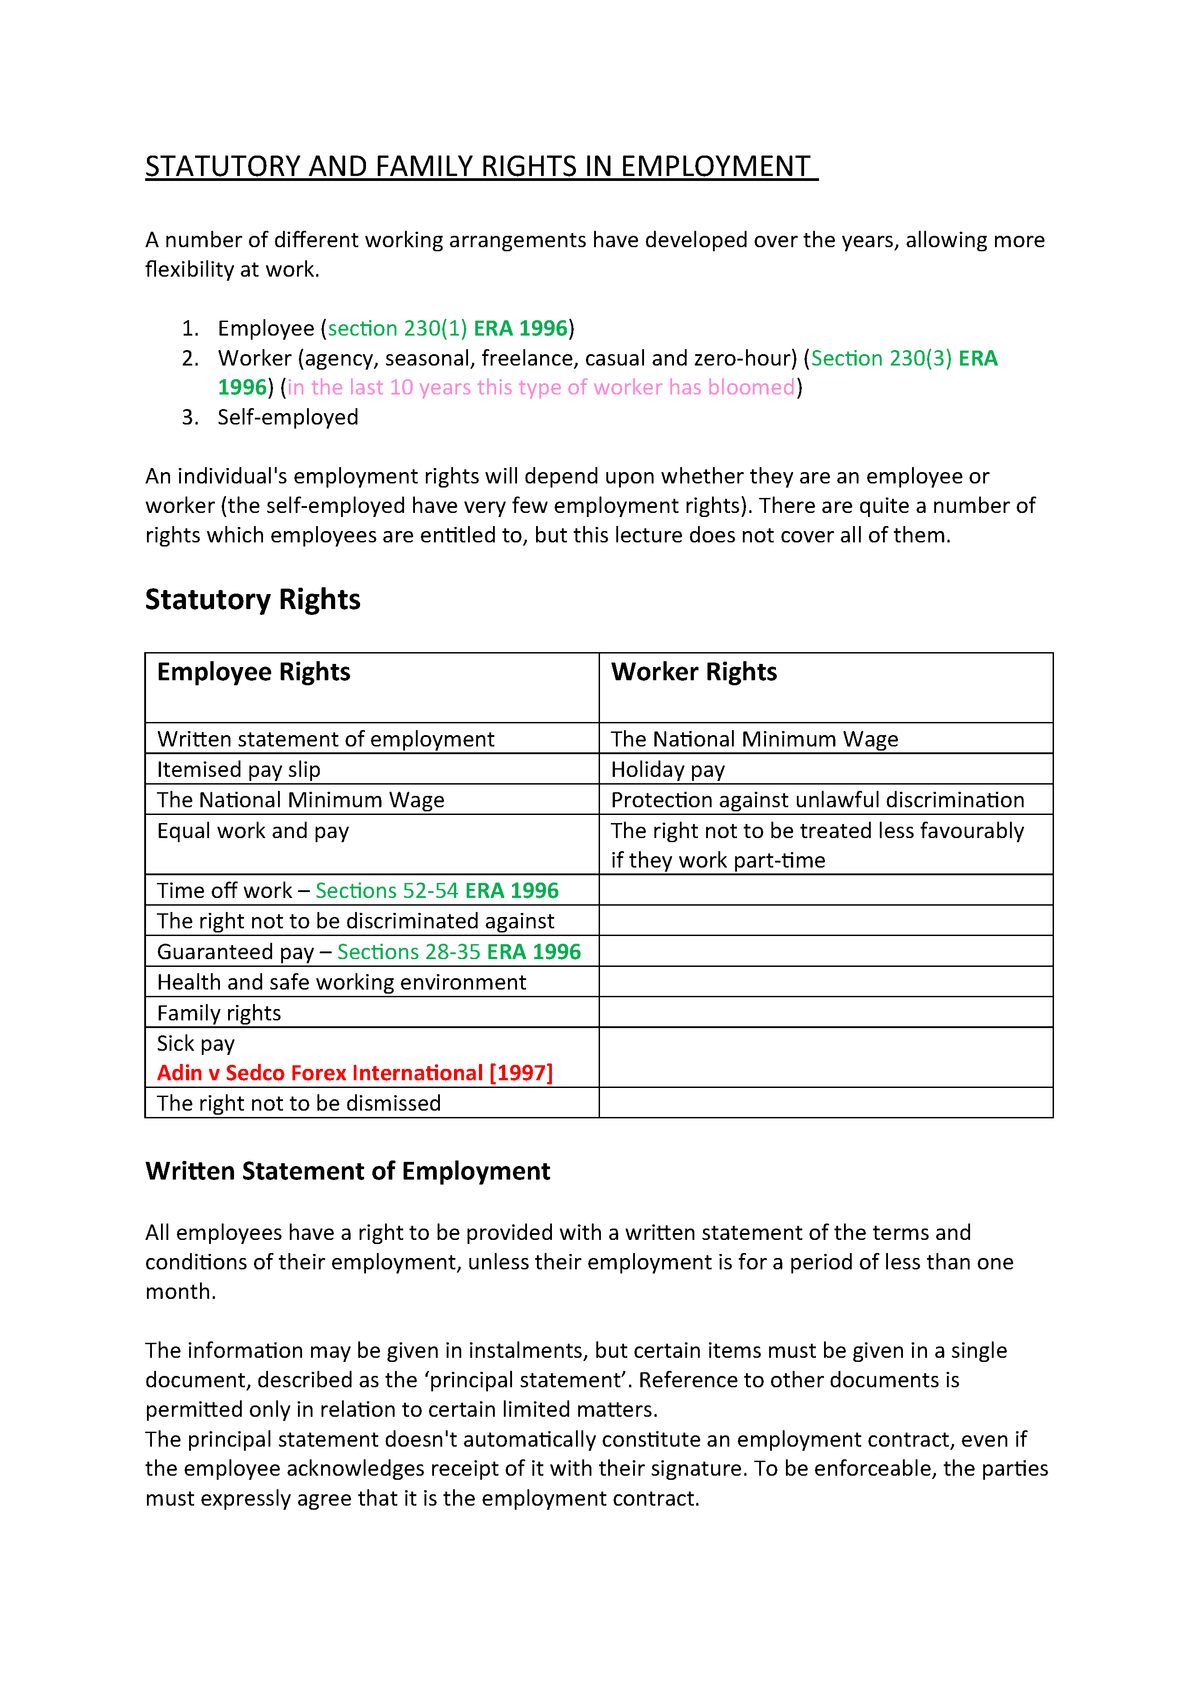 L9 Rights. - Lecture notes 1 - Employment Law - CCCU - StuDocu